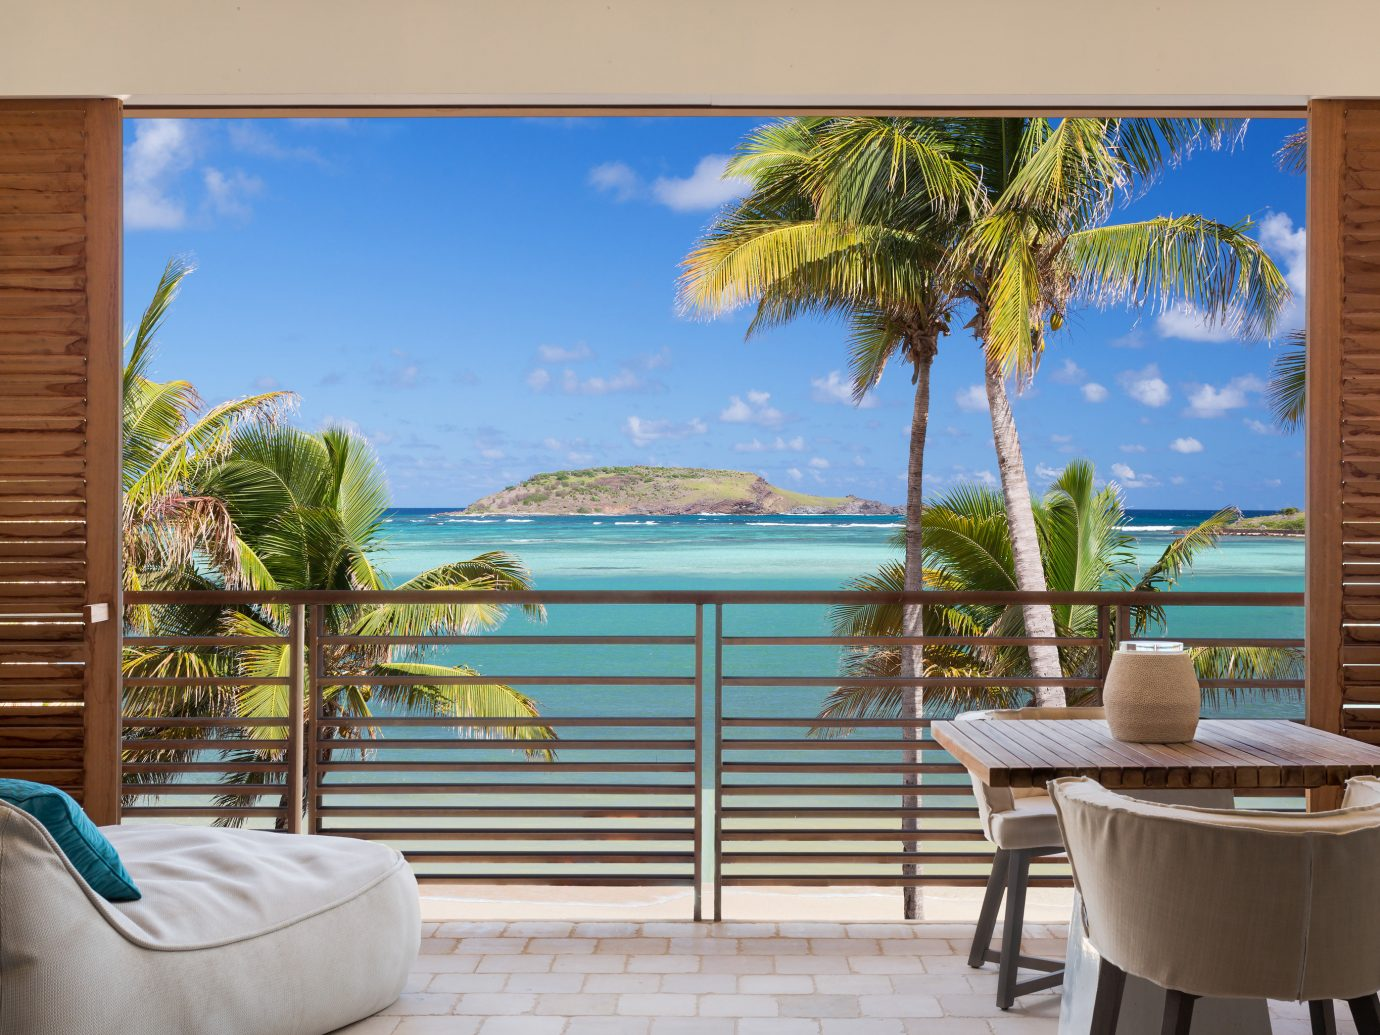 Hotels window indoor property room vacation condominium home estate swimming pool caribbean interior design Resort mural real estate window covering living room Villa apartment furniture